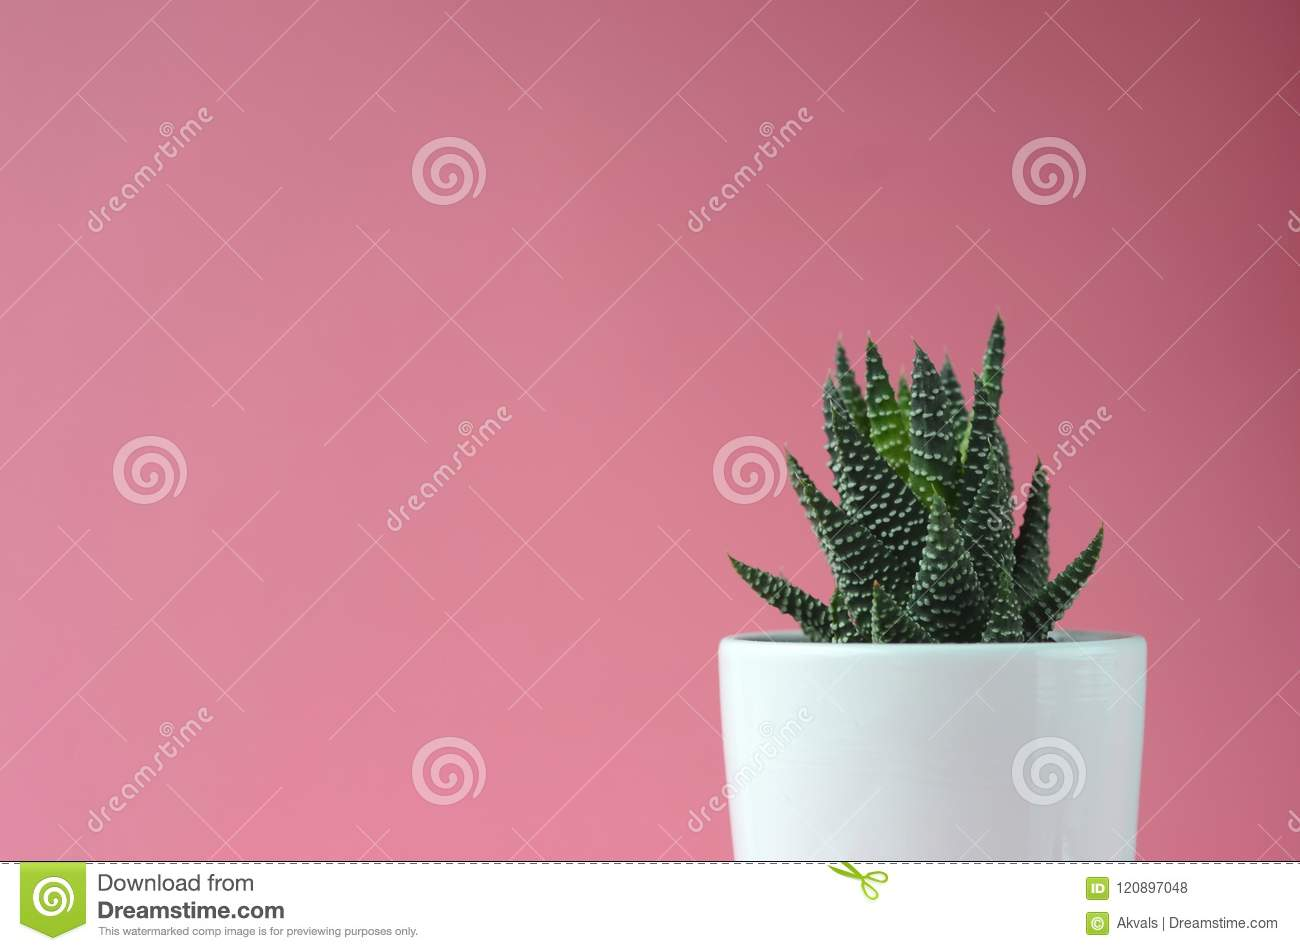 Modern Minimalist Home Decor Succulents On A Solid Color Copy Space Stock Photo Image Of Bold Gardening 120897048